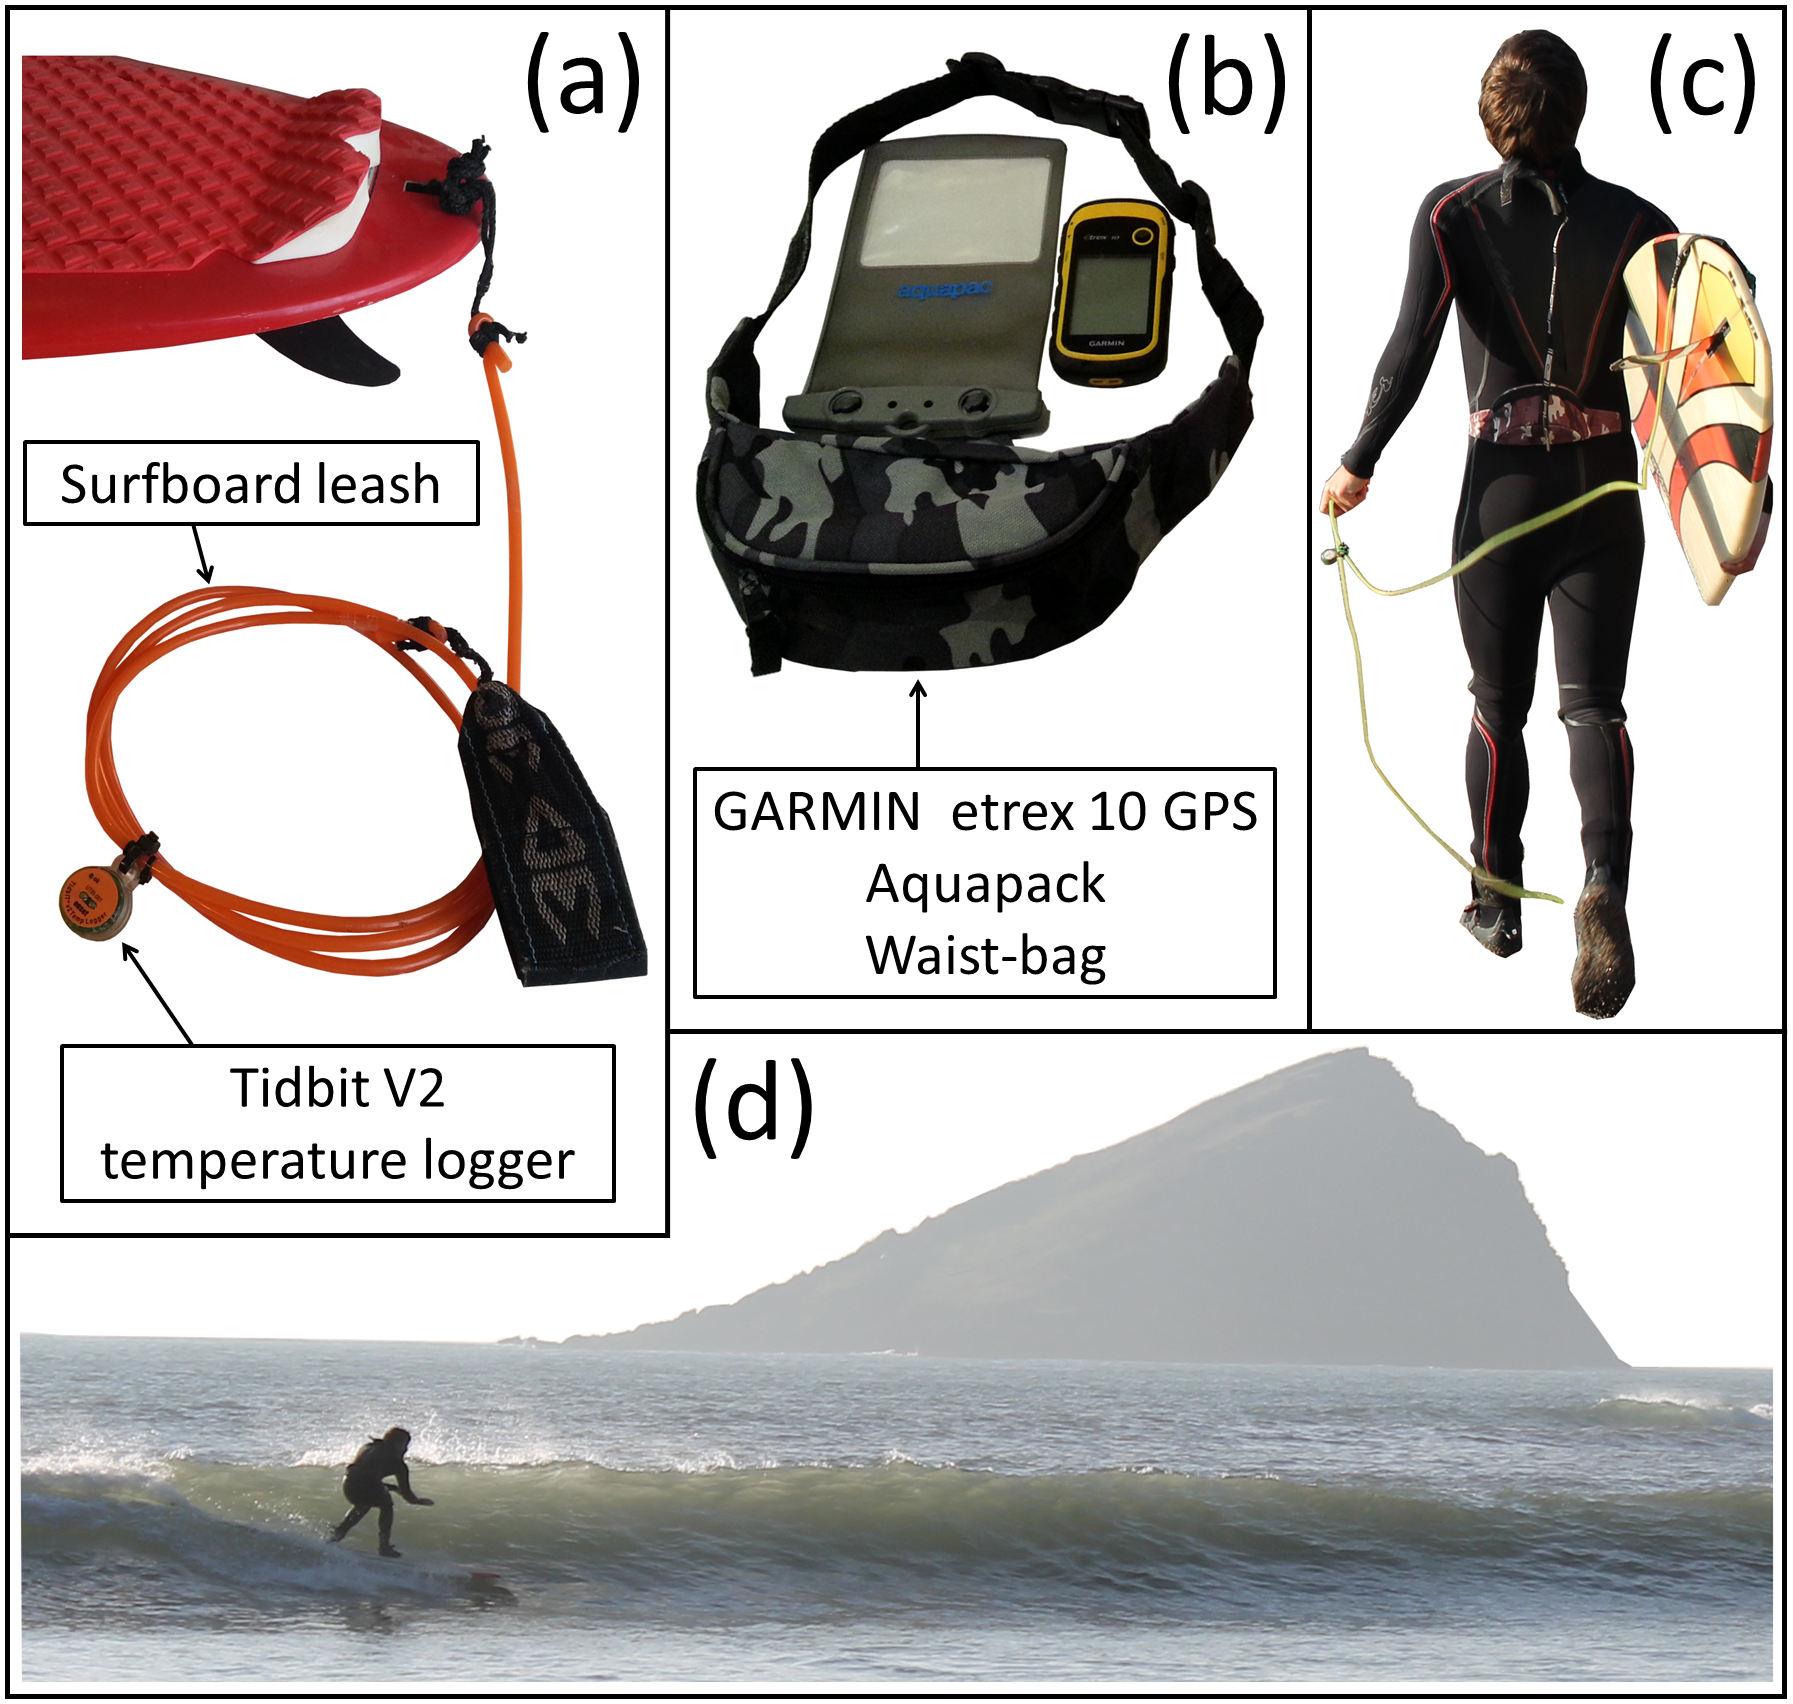 Equipment used in the study and surfer set-up. (a) Shows the Tidbit V2 temperature logger attached at mid-point to the surfboard leash. HOBOware software and HOBO USB Optic Base Station (BASE-U-4) were used by the surfer to launch the Tidbit V2 temperature logger prior to each session, and then to upload data post session. (b) Shows the GARMIN extrex 10 GPS, water-resistant Aquapac and waist-bag worn by the surfer. Information at one second intervals on location (latitude and longitude), time, distance, speed and orientation for each surf, were extracted from the GPS device post session. (c) Shows the surfer equipped with the sensors, and (d) shows the surfer collecting data during a session at Wembury beach. Consent to publication was obtained from the participant in this figure.  doi:10.1371/journal.pone.0127706.g001